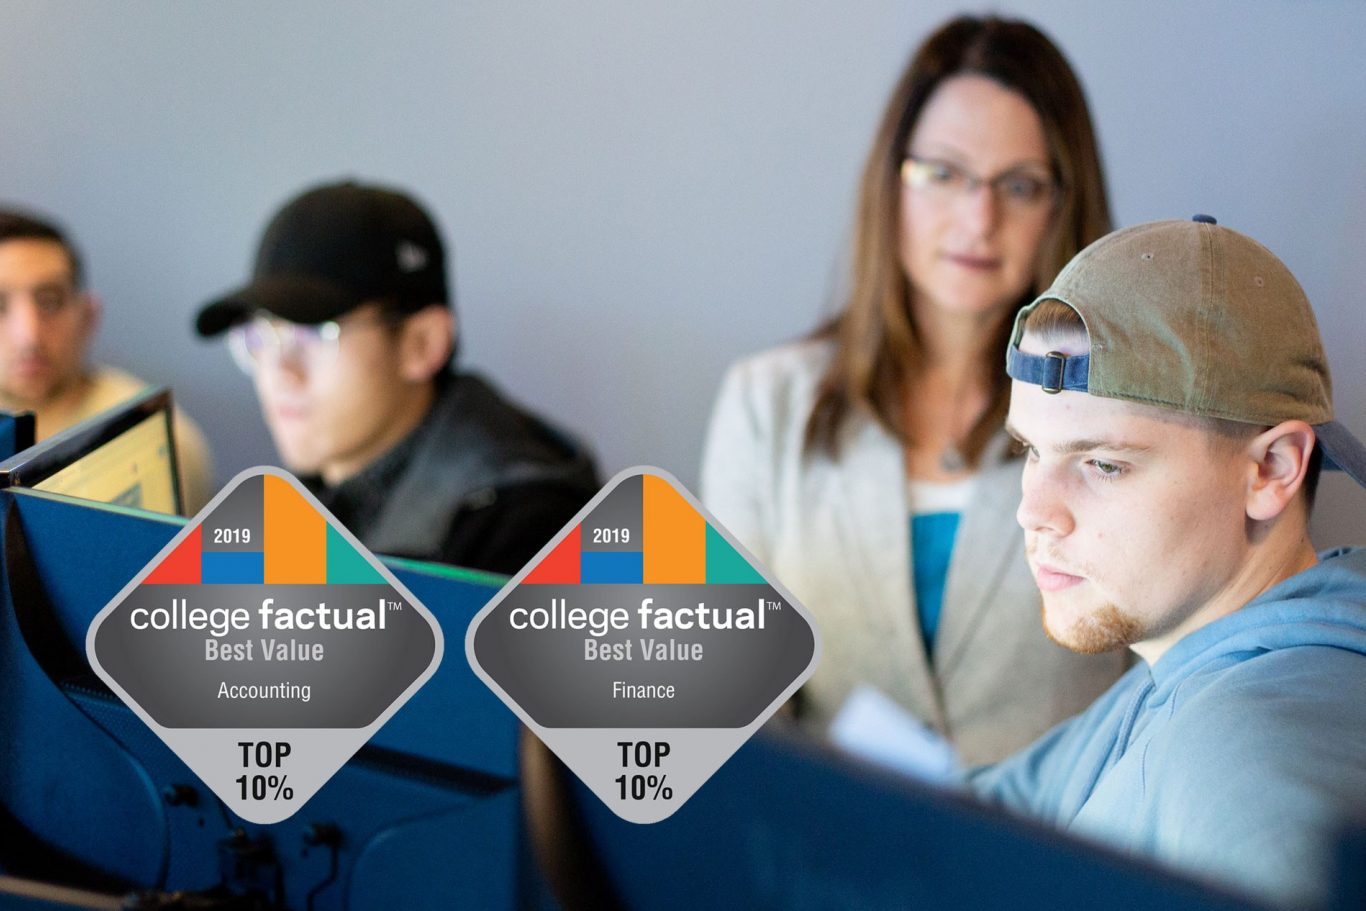 College factual badges